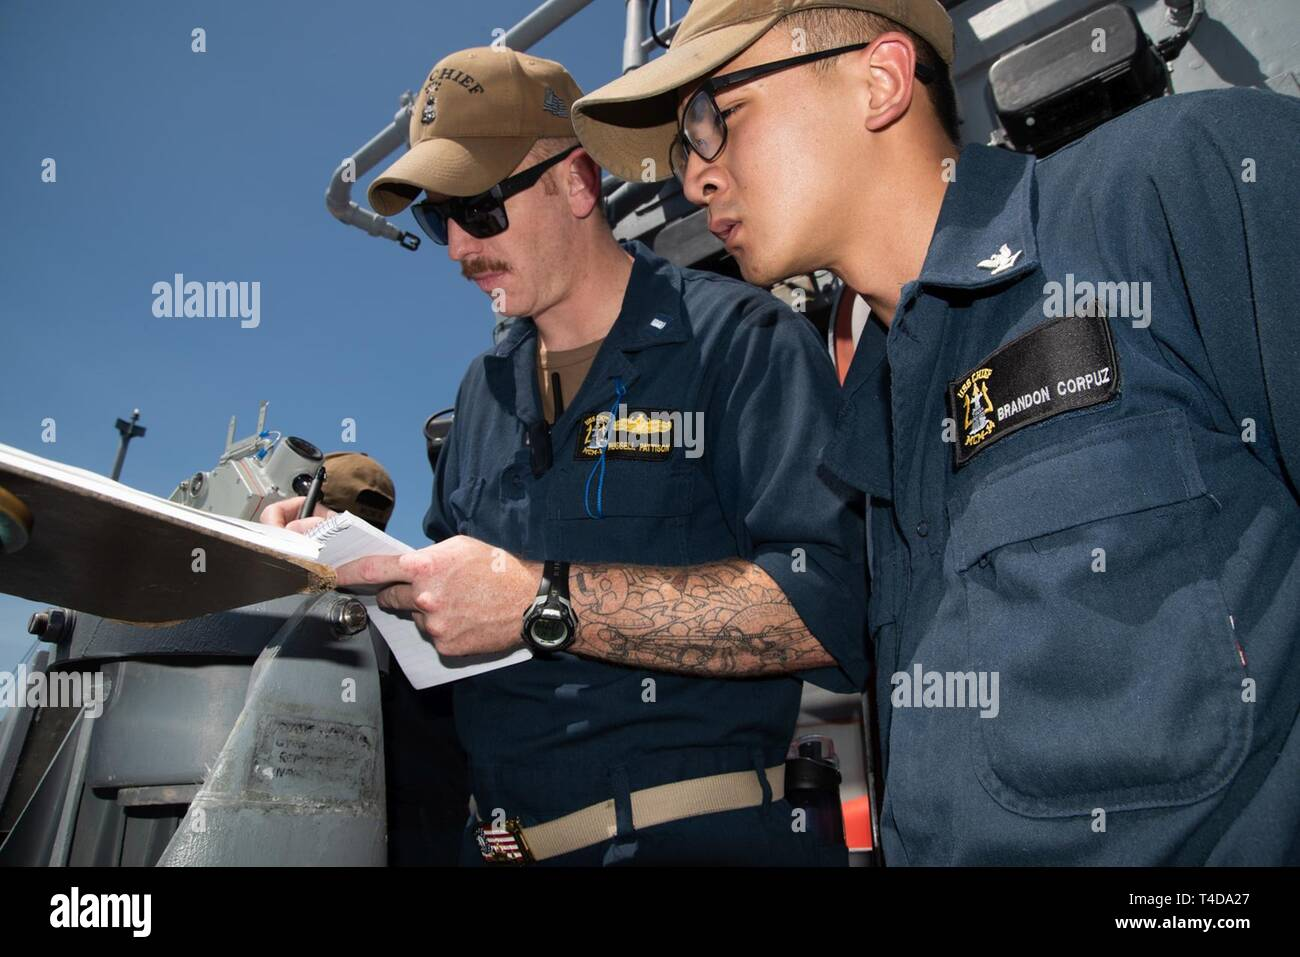 SOUTH CHINA SEA (March 21, 2019) Lt. j. g. Russell Pattison (left), from Perryton, Texas, and Quartermaster 3rd Class Brandon Corpuz, from San Diego, California, translate flashing-light Morse code received from Philippine Navy vessel BRP Ramon Alcaraz (FF 16) aboard the Avenger class mine countermeasures ship USS Chief (MCM 14) during a maritime cooperative activity. Chief, part of Mine Countermeasures Squadron 7, is operating in the Indo-Pacific region to enhance interoperability with partners and serve as a ready-response platform for contingency operations. - Stock Image